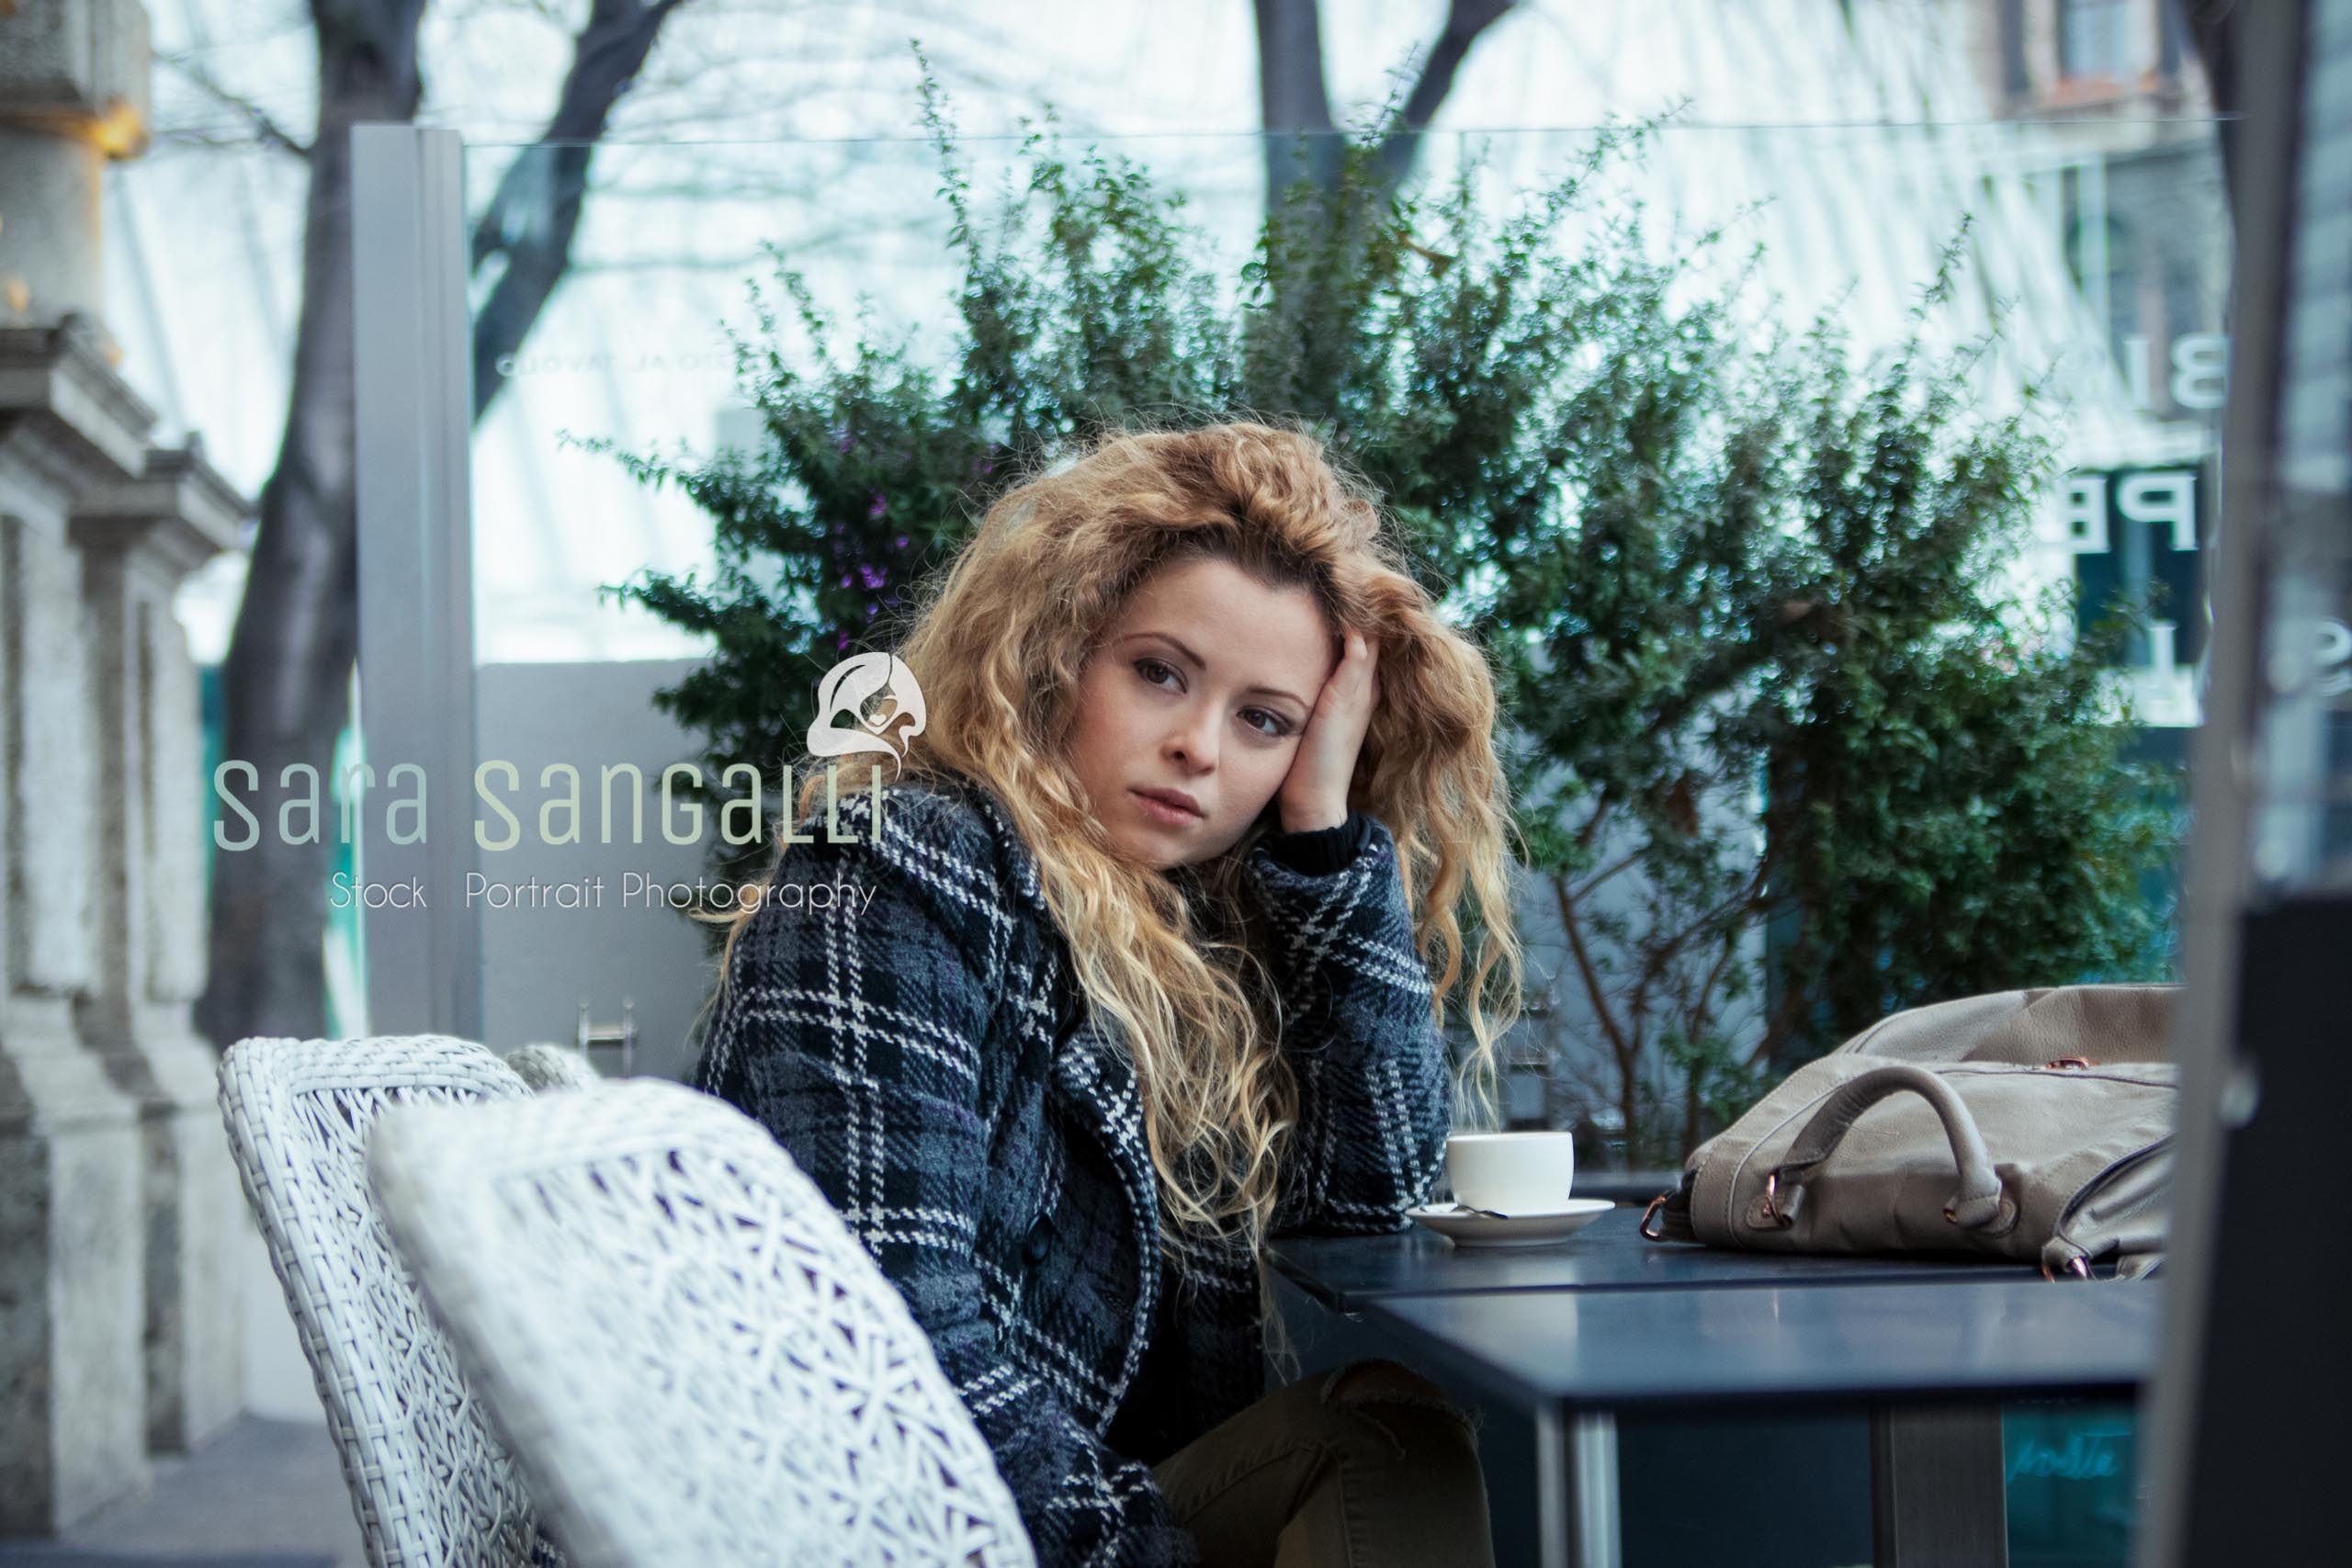 Young blonde woman taking a break at a coffee bar. Serious expression, looking away.